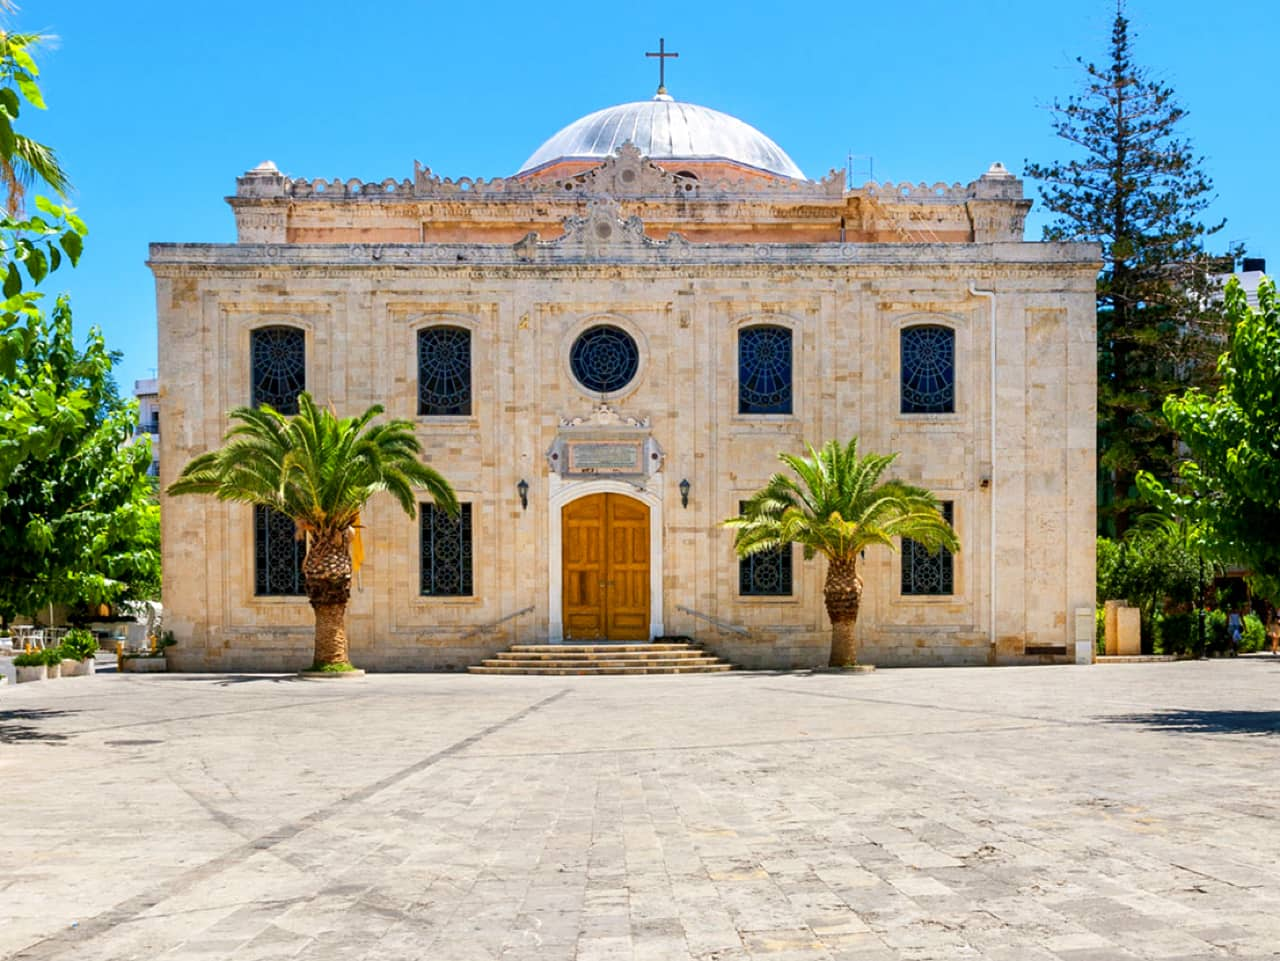 A Tour of the City of Heraklion crete, cultural tour iraklion crete, heraklion crete activiities, heraklion city tour self guided, best places to visit heraklion, what to do heraklion crete, koules fortress, morosini krini, st titos, st minas church, food tour heraklion